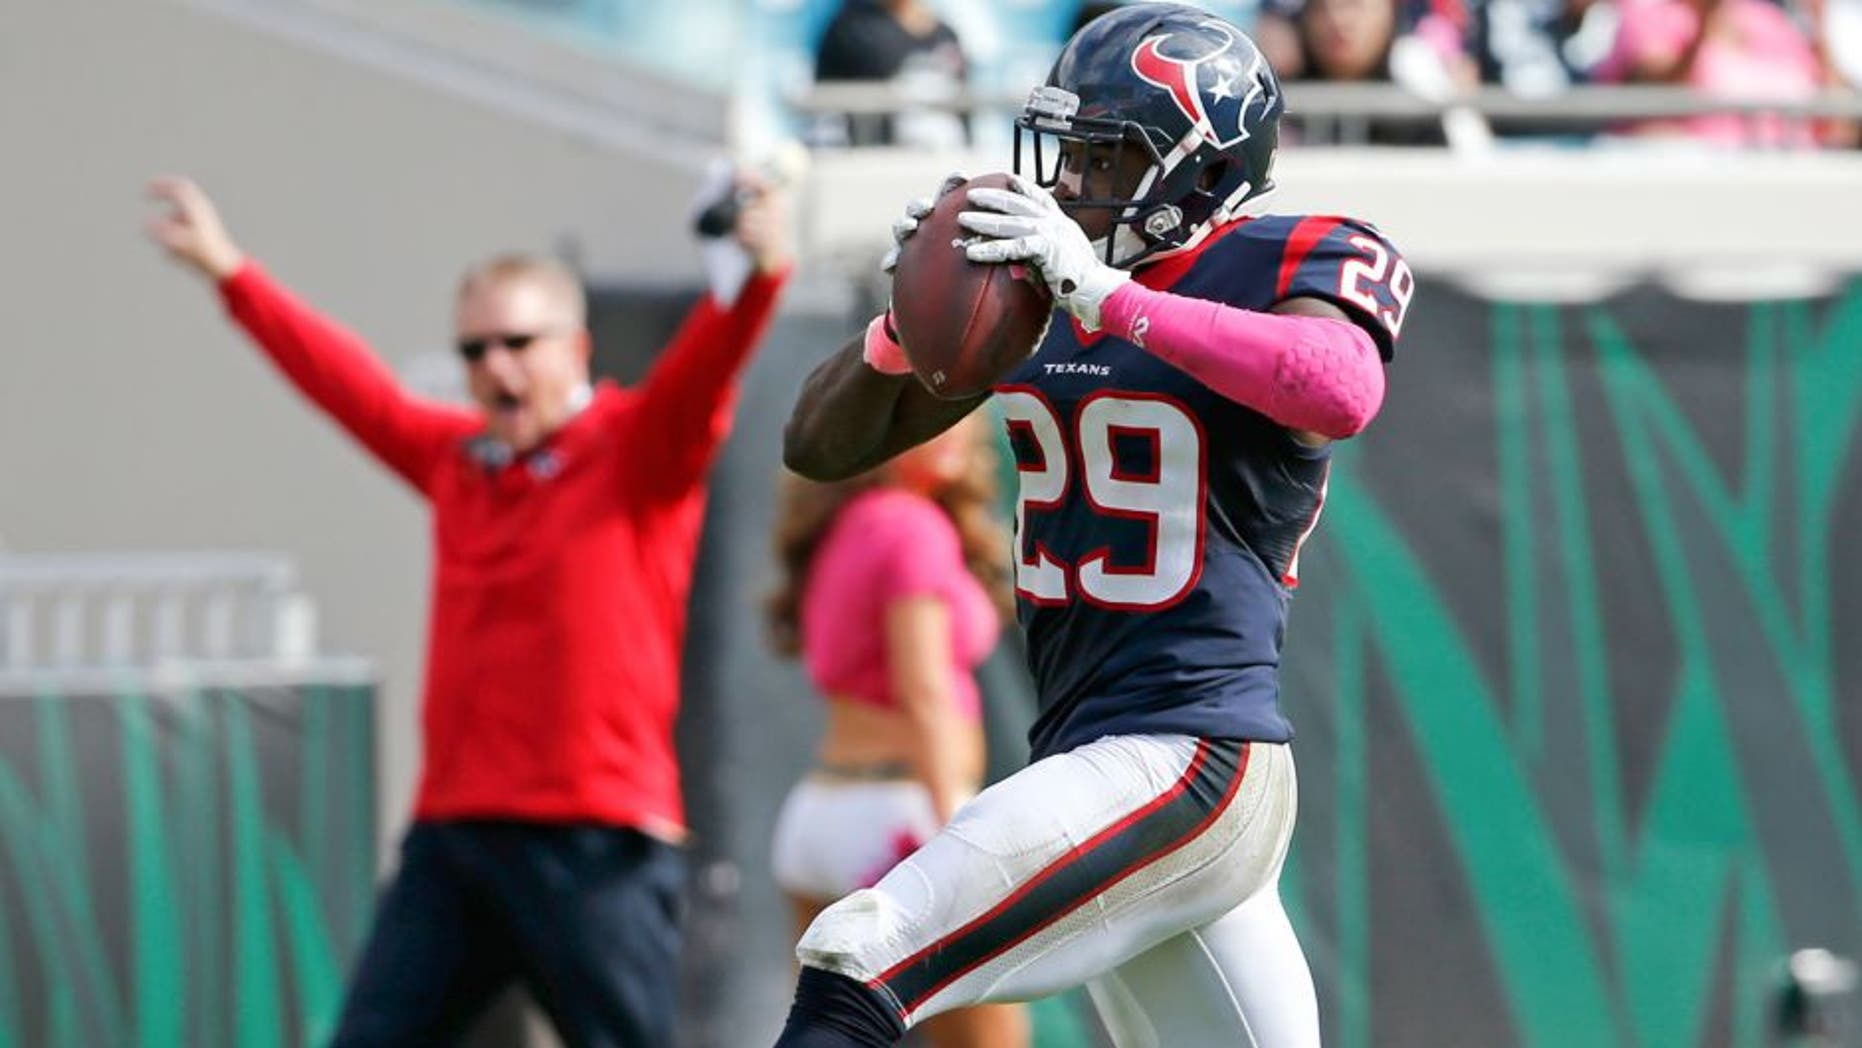 Houston Texans defensive back Andre Hal (29) returns an interception 31-yards for a touchdown against the Jacksonville Jaguars during the second half of an NFL football game in Jacksonville, Fla., Sunday, Oct. 18, 2015. (AP Photo/Stephen B. Morton)